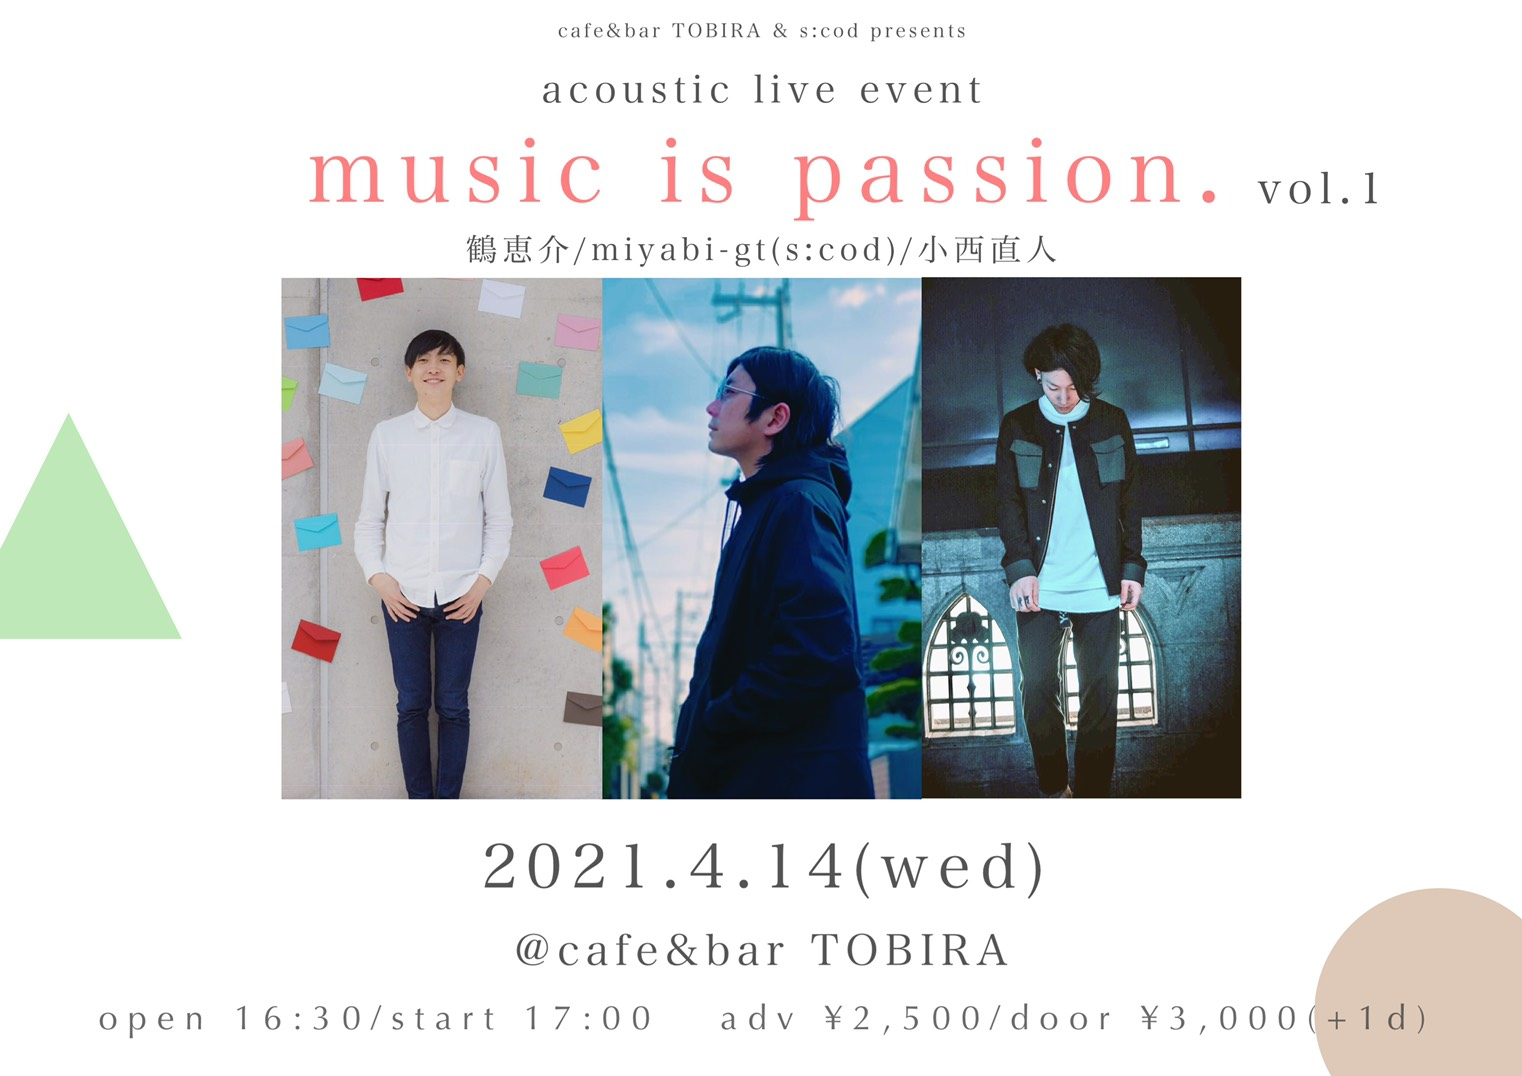 music is passion vol.1